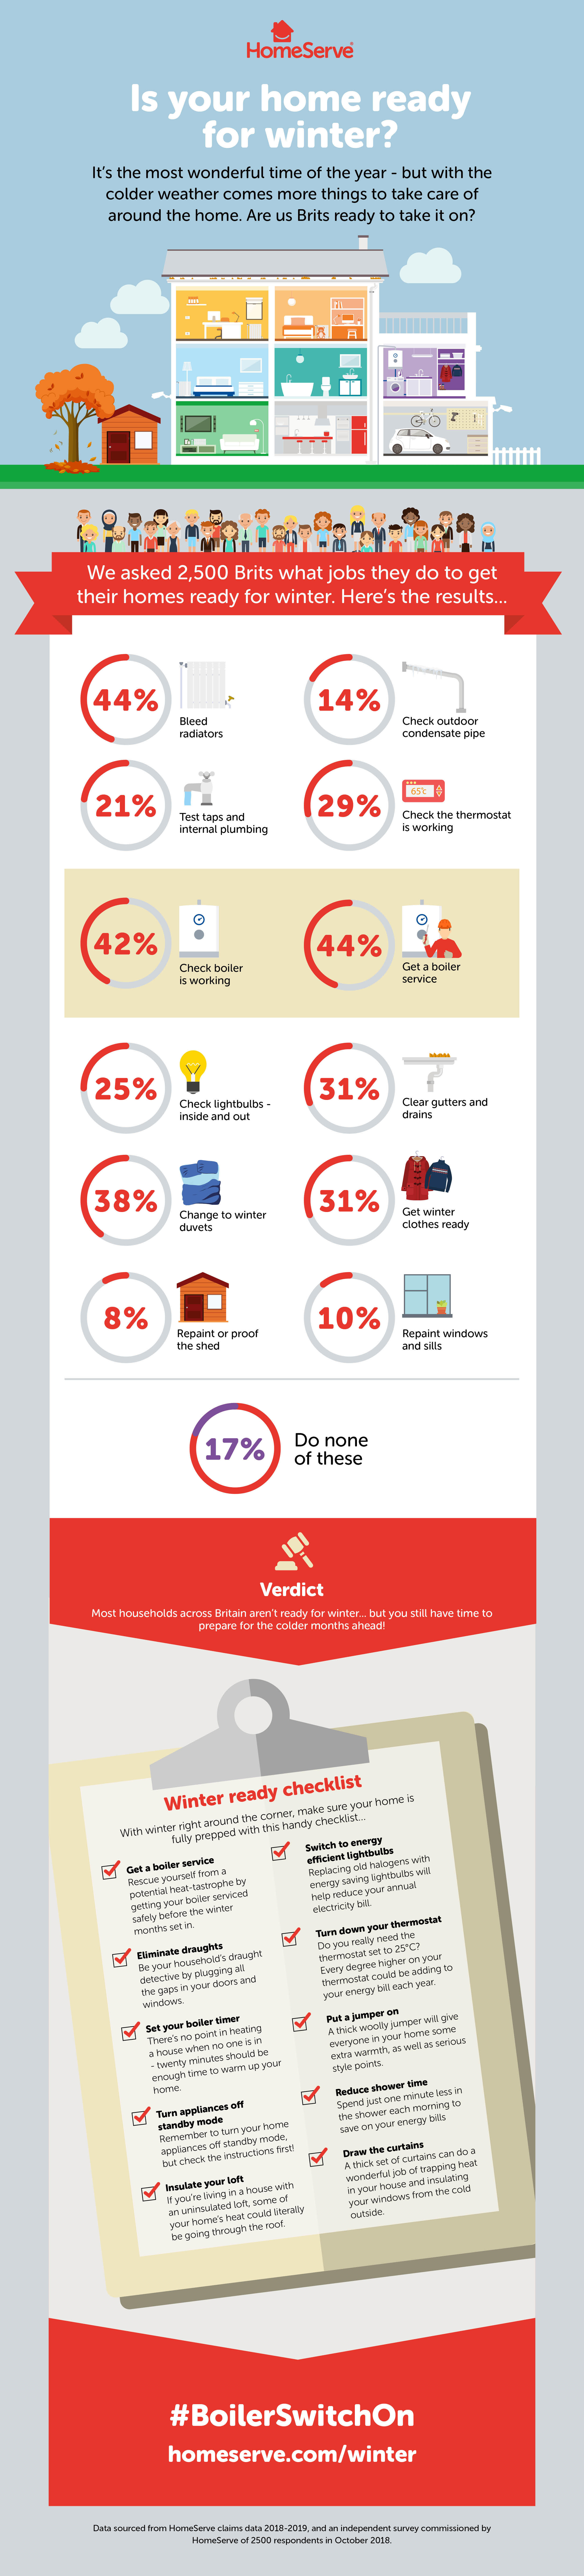 is your home ready for winter infographic